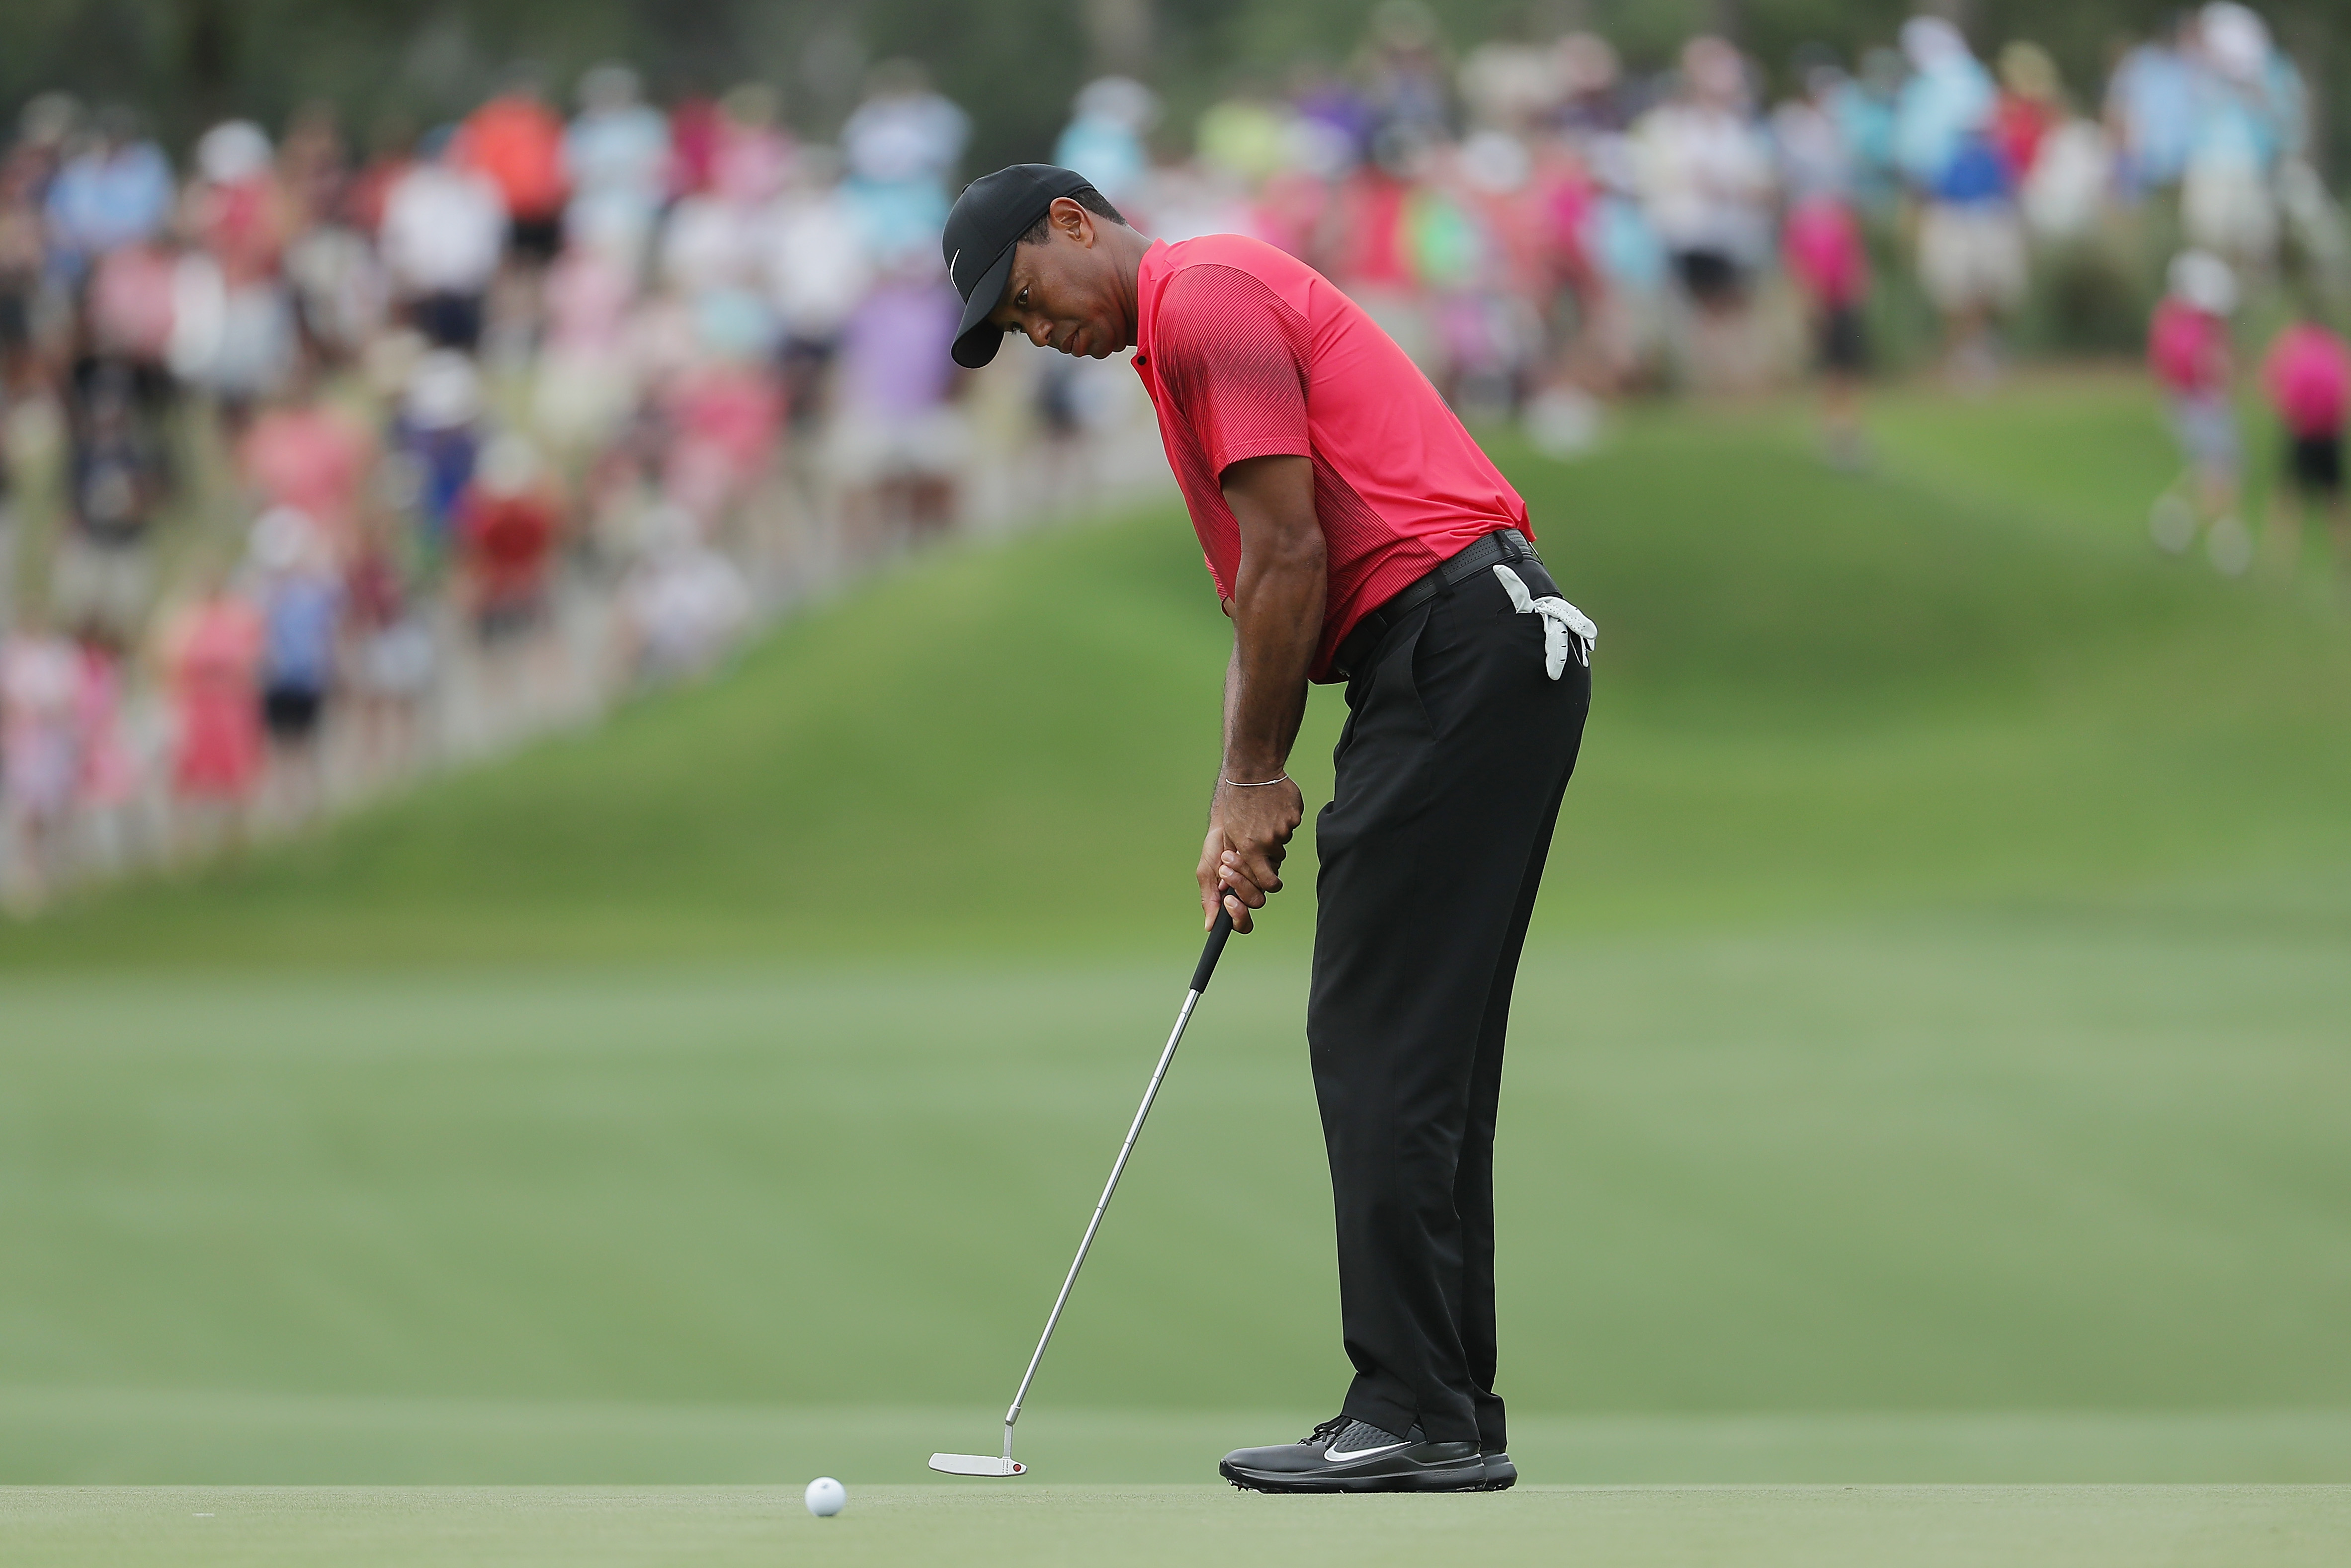 Putting Tips: Surprisingly Simple Drills to Improve Your Putting